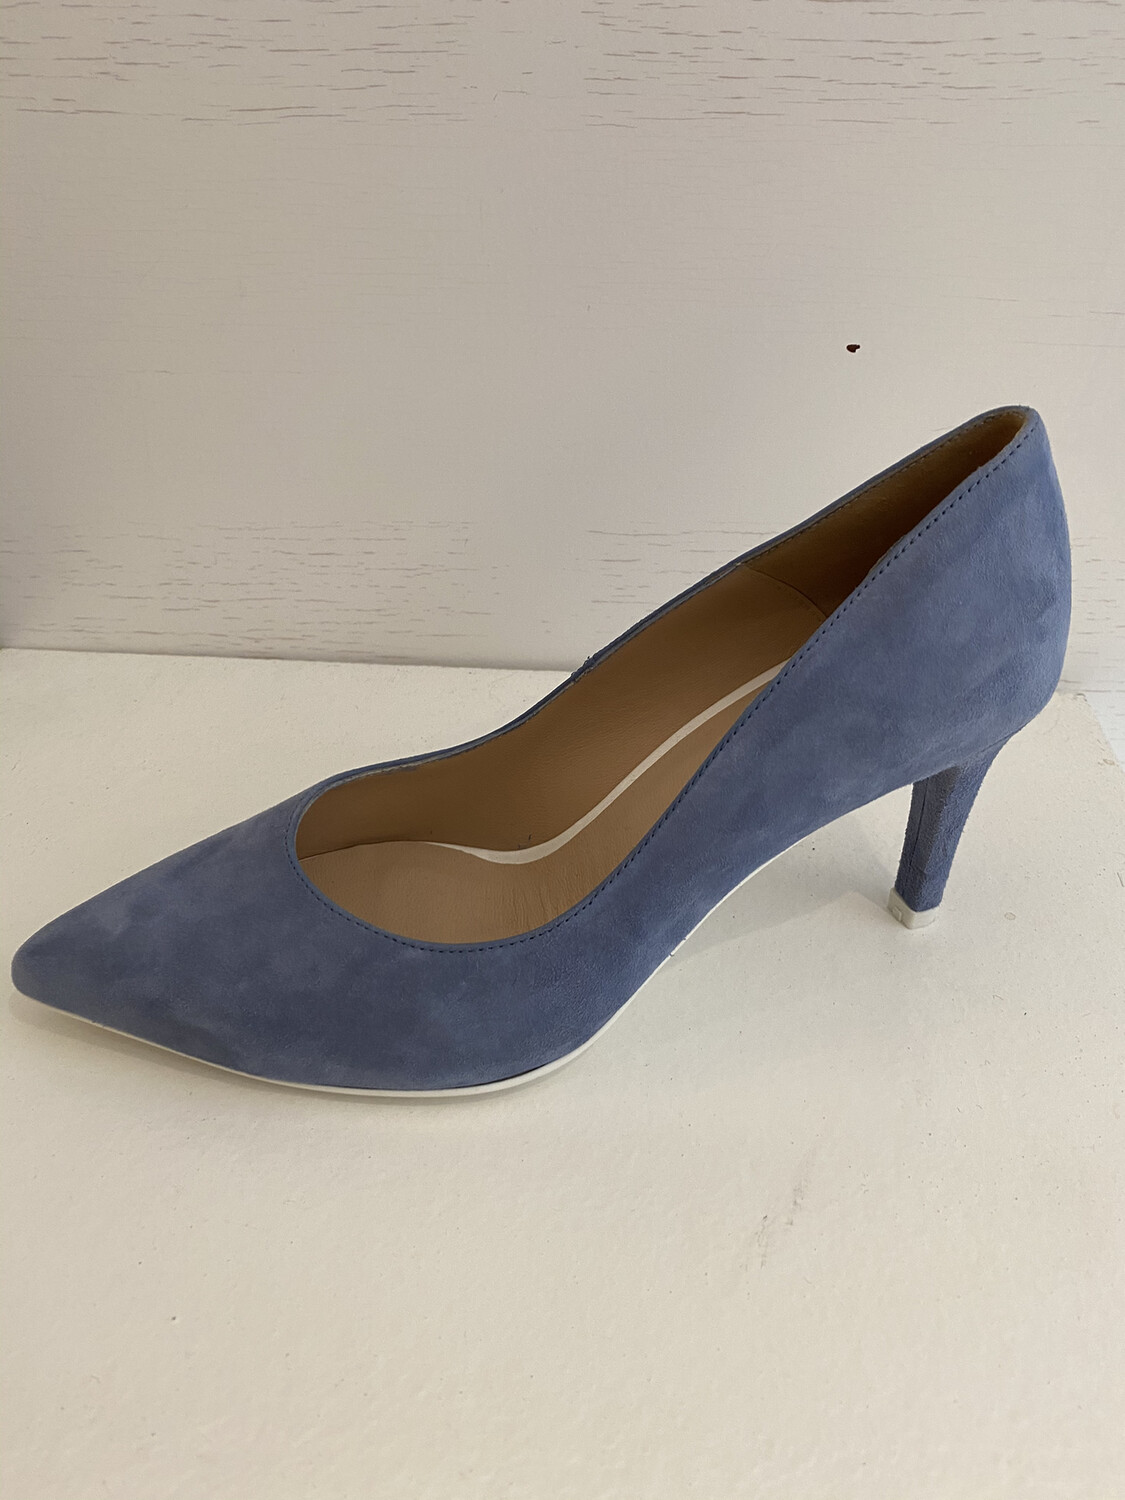 CATWALK PUMP IN LICHTBLAUWE DAIM